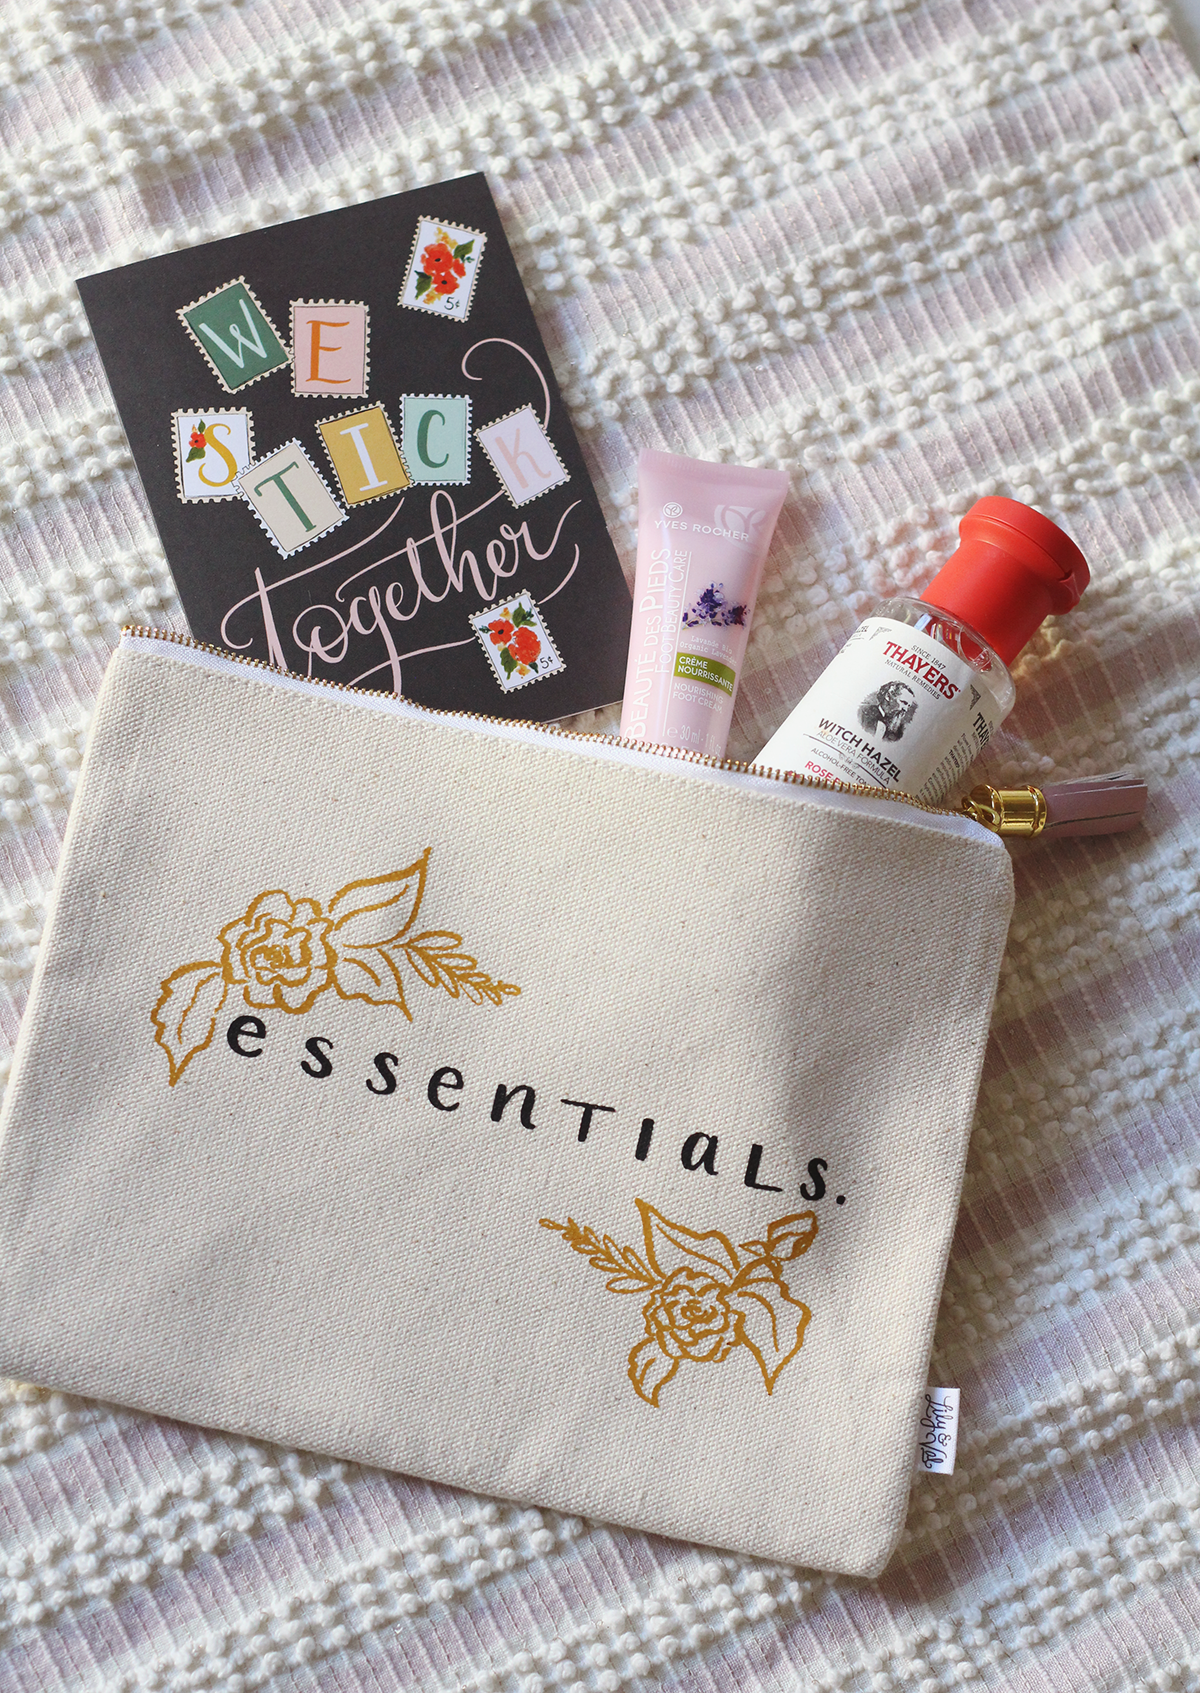 Essentials gift pouch idea!